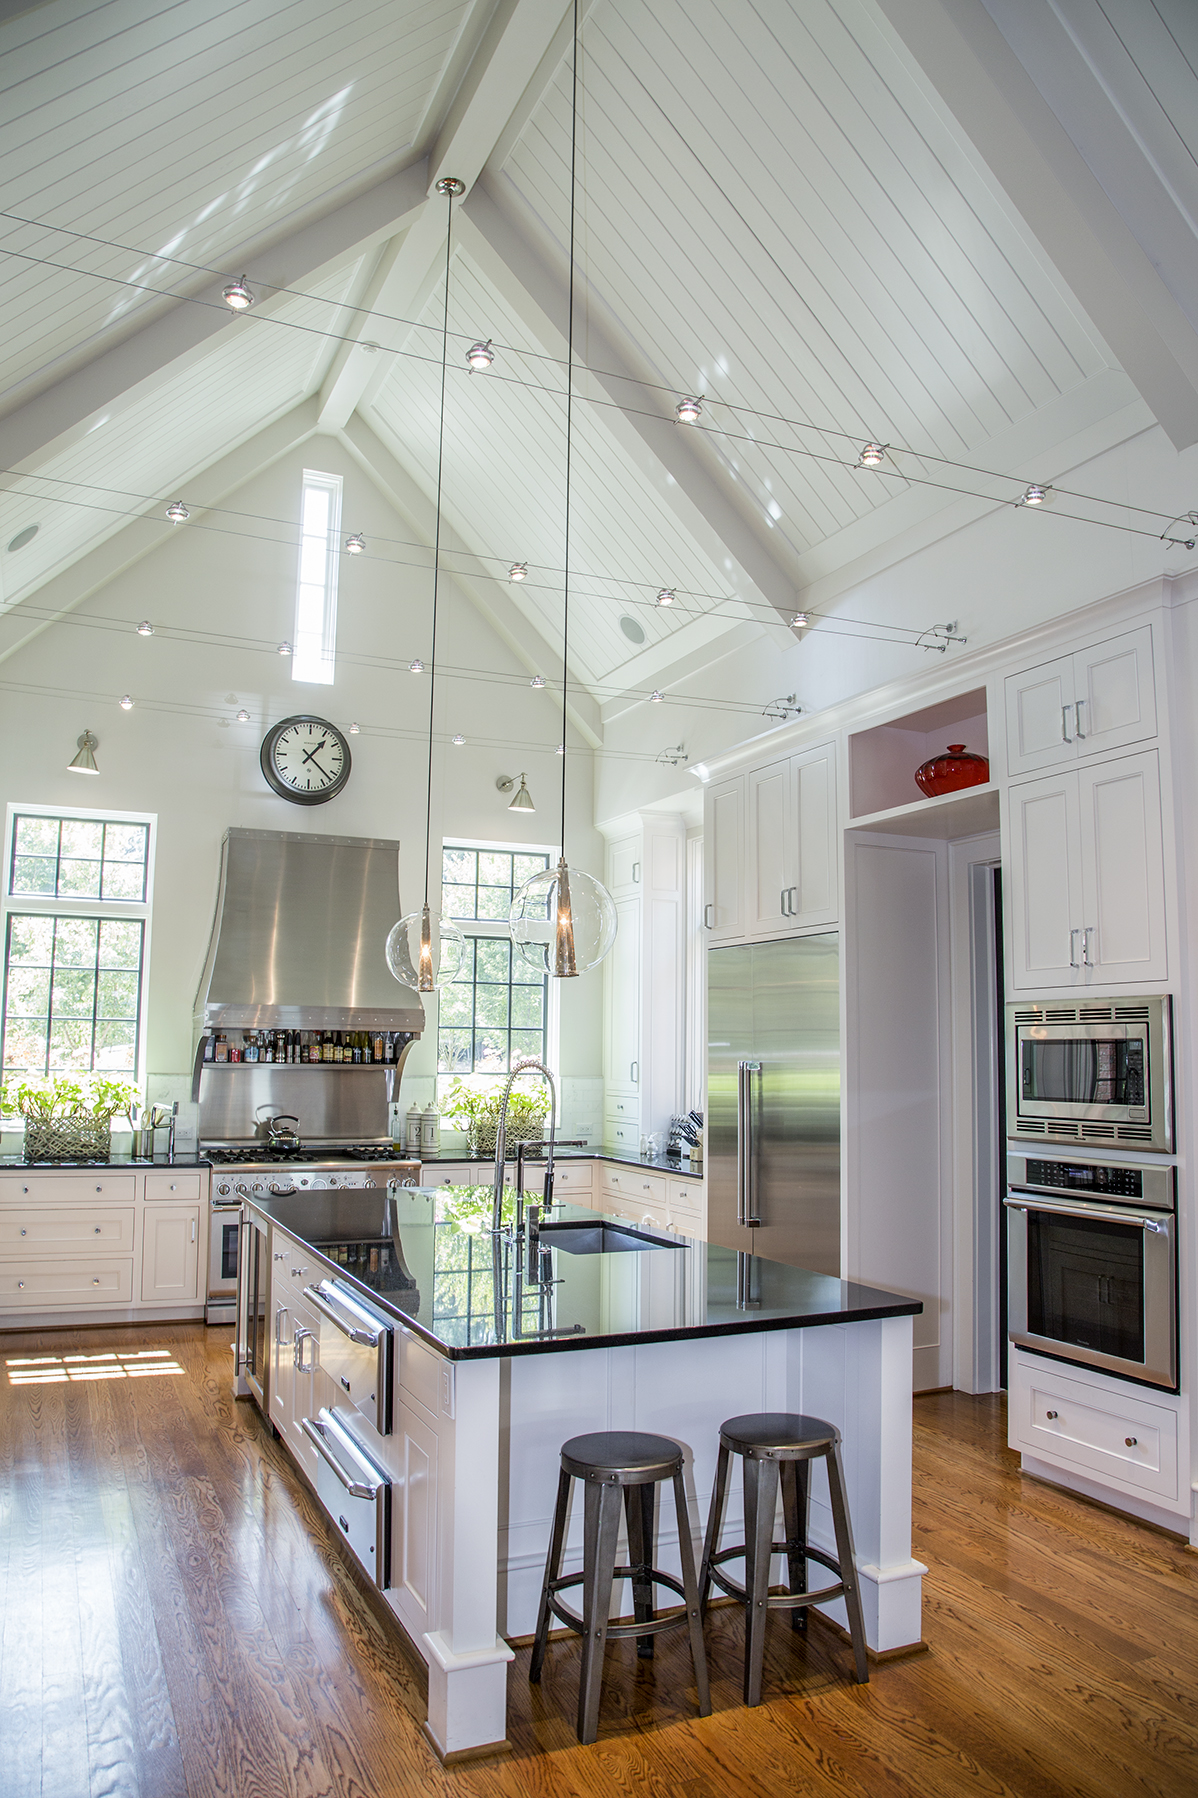 """The Point's kitchen won """"Room of the Year"""" in The National Association of Home Builder's 2012 Best in American Living Awards."""